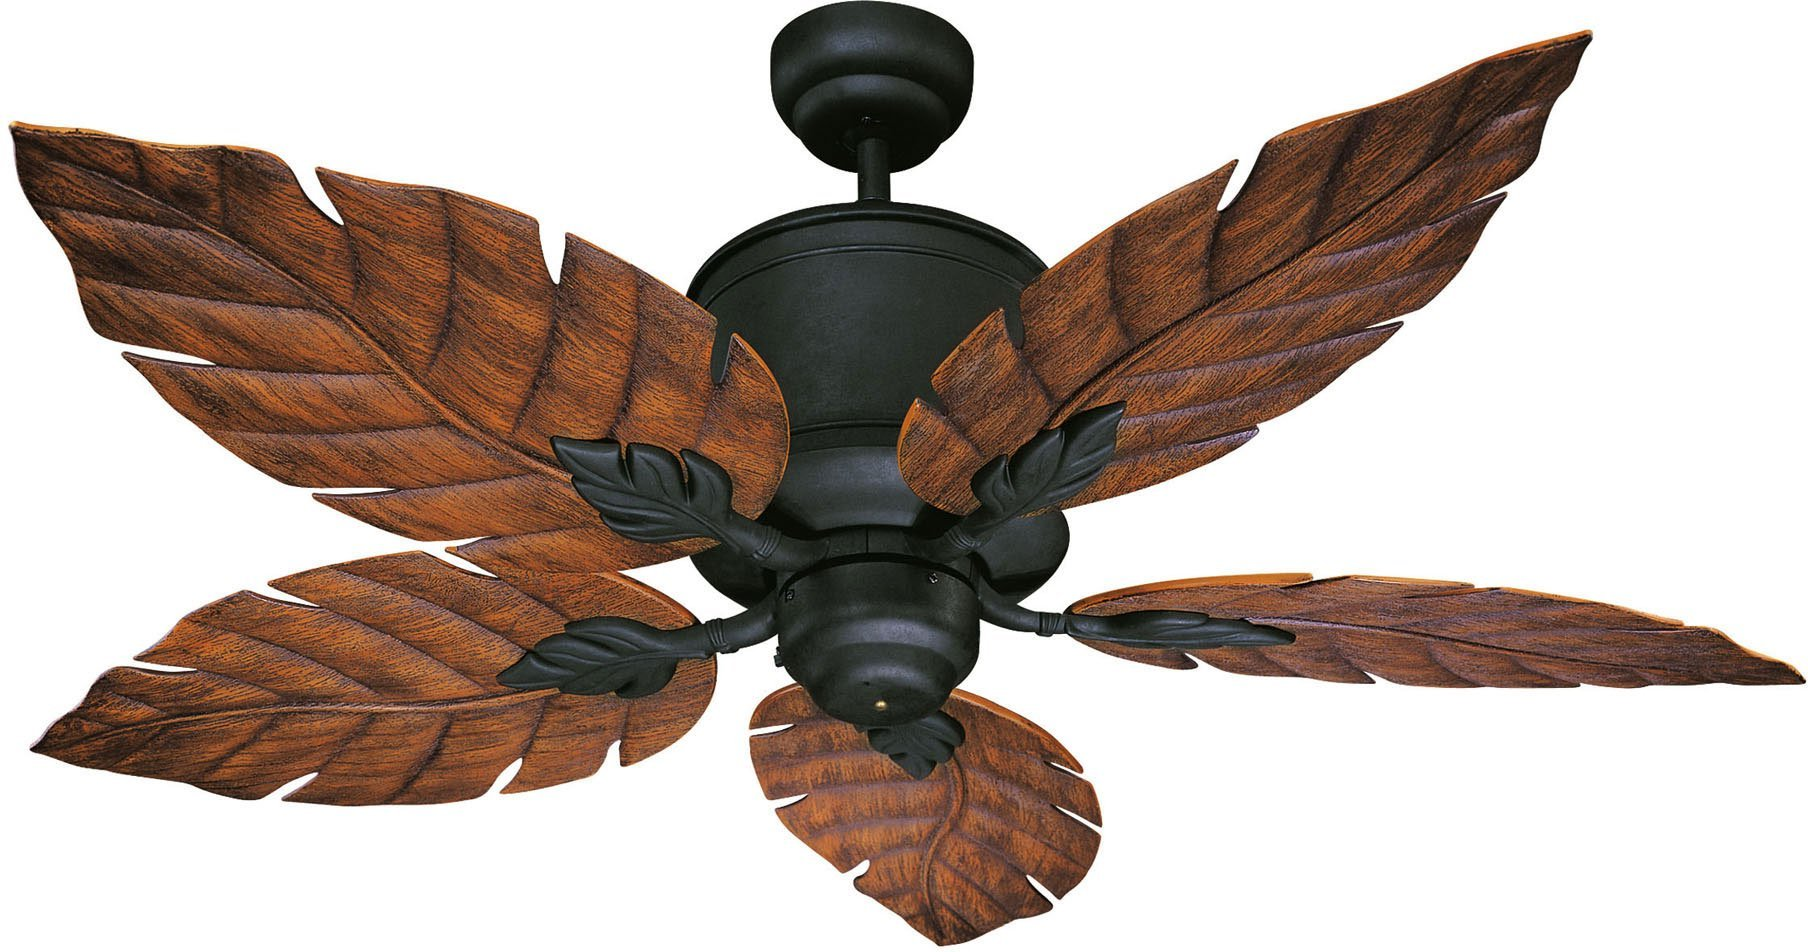 Leaf Style Ceiling Fans 10 Benefits Of Leaf Ceiling Fan Blades Warisan Lighting